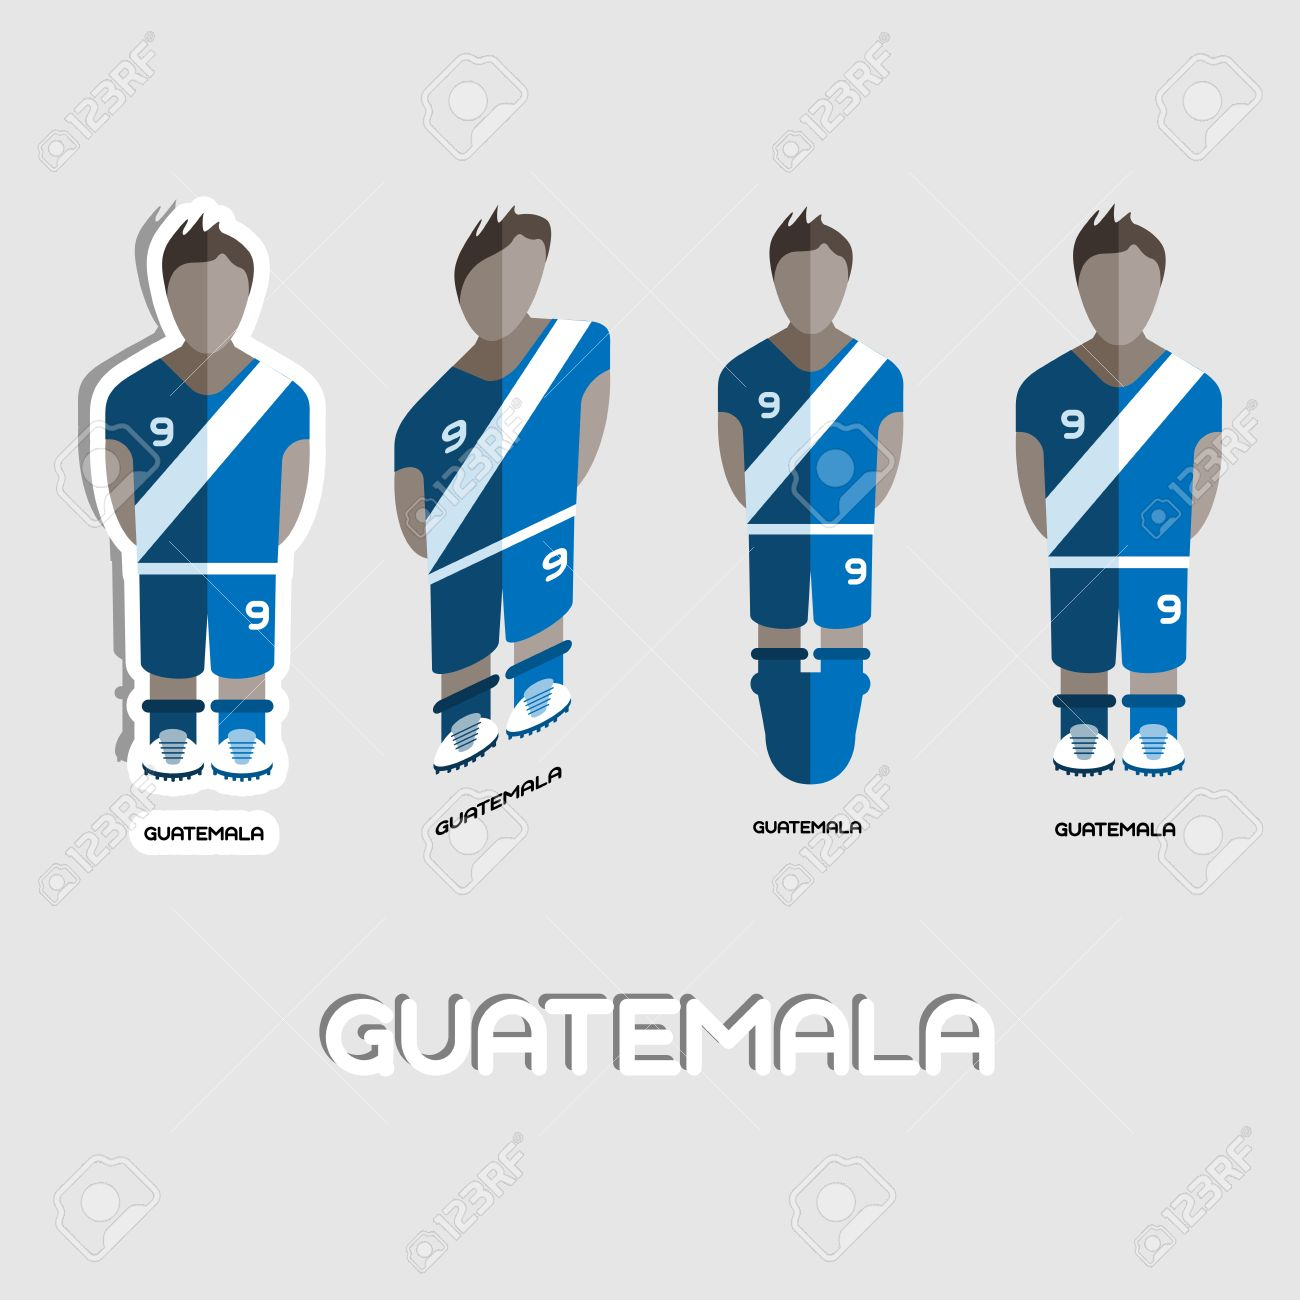 Guatemala Soccer Team Sportswear Template Front View Of Outdoor Activity For Men And Boys